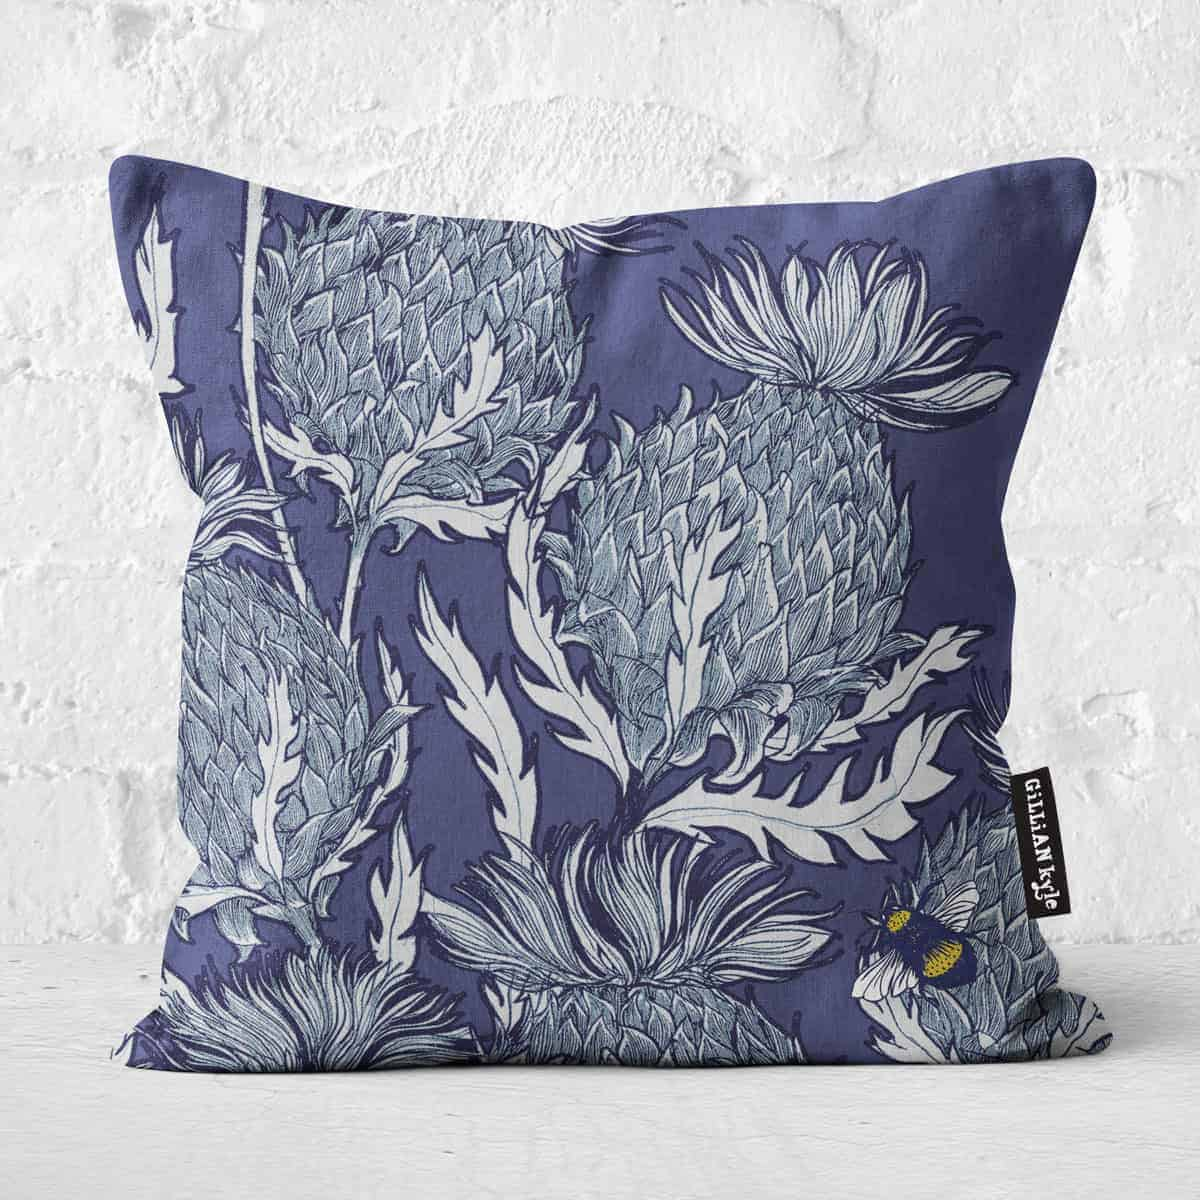 Flower of Scotland, Scottish Thistle cushion design by Scottish artist Gillian Kyle